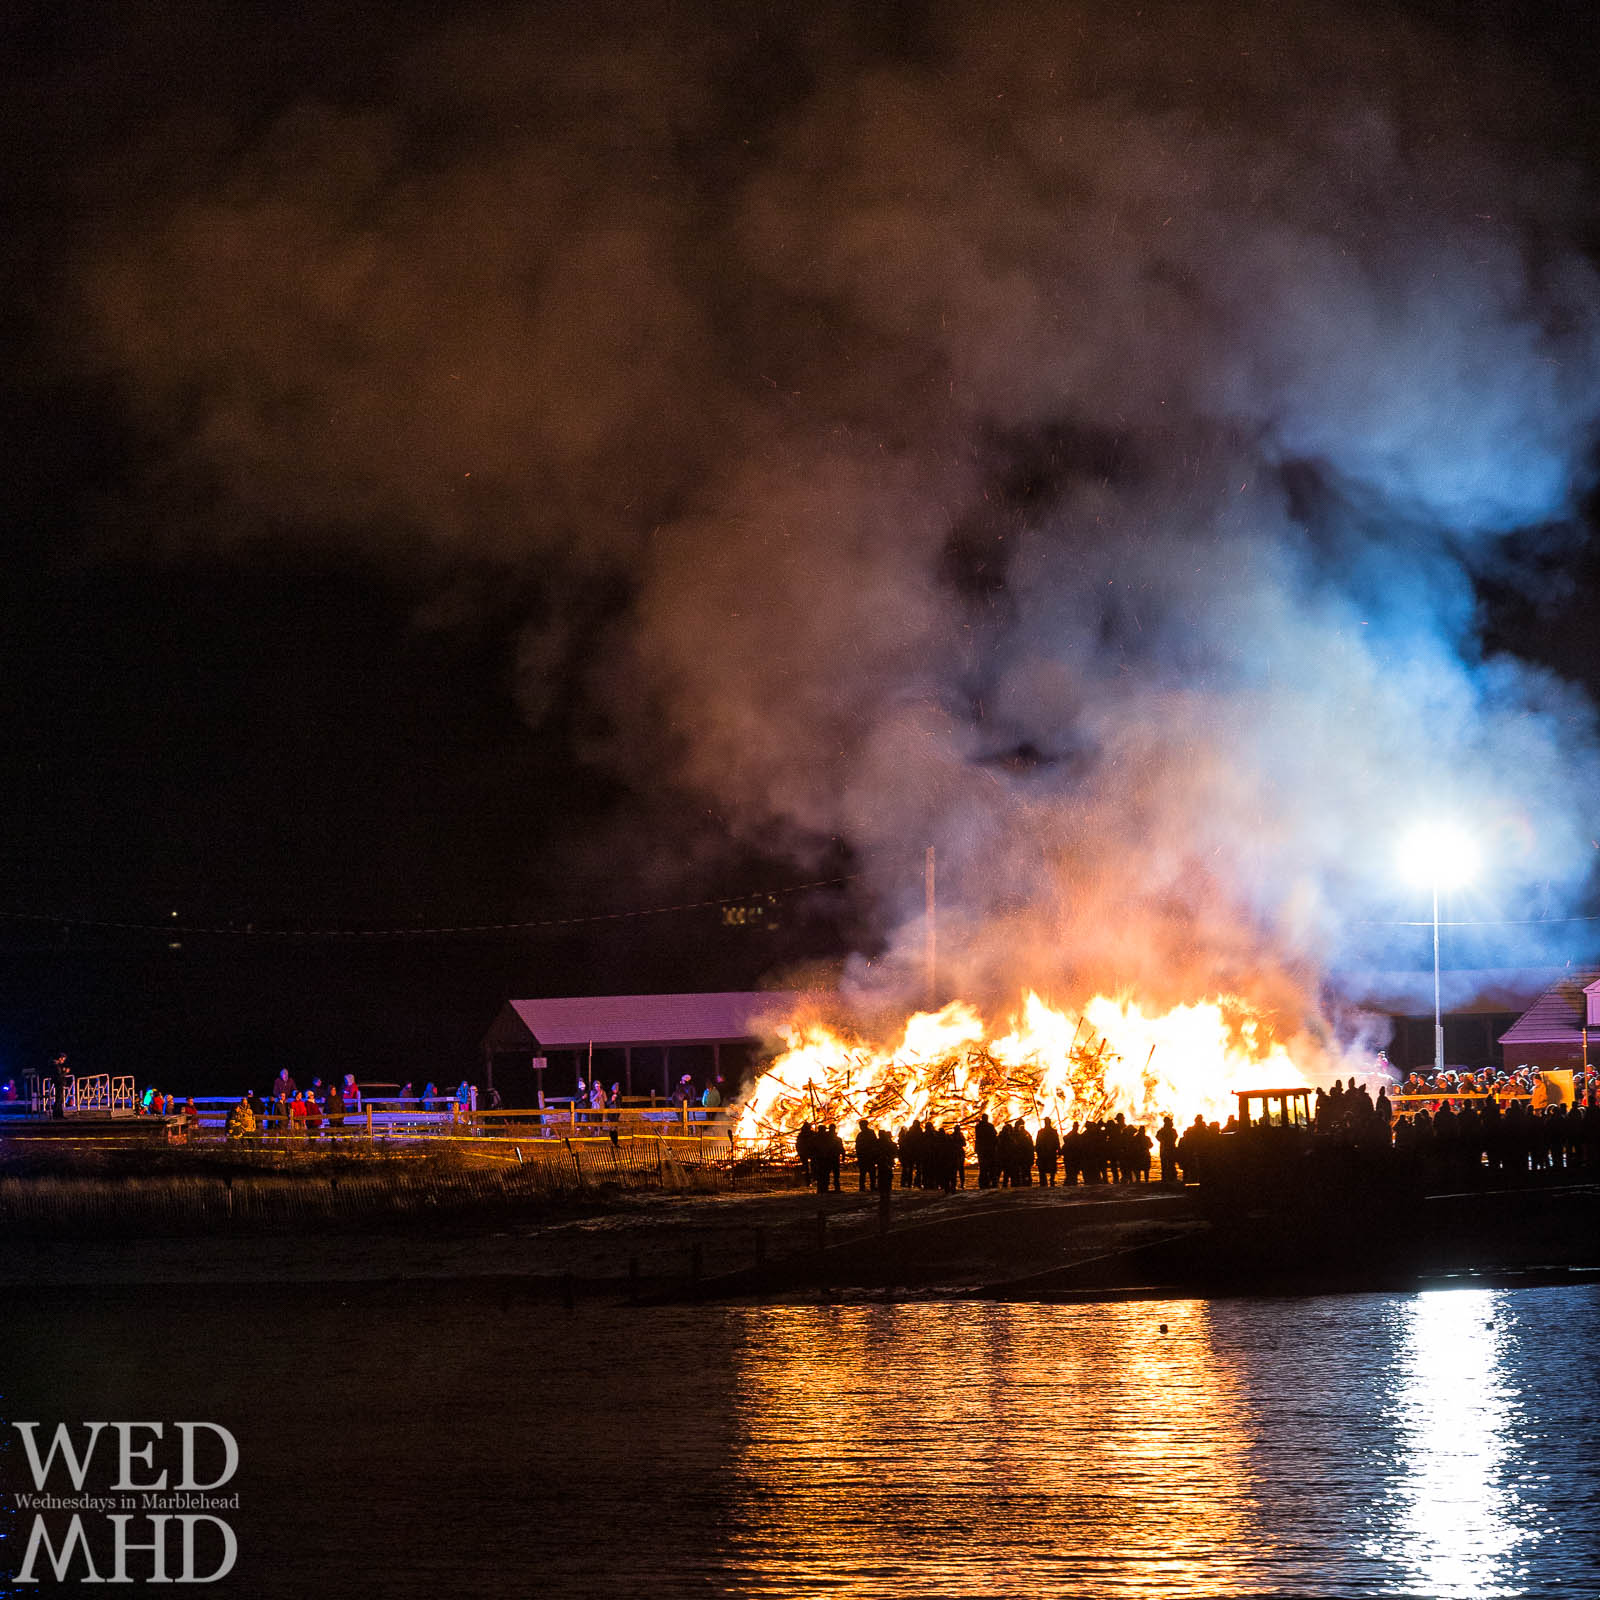 The Epiphany tree burning takes place tonight (Monday, January 6) at Riverhead Beach with Christmas trees set ablaze